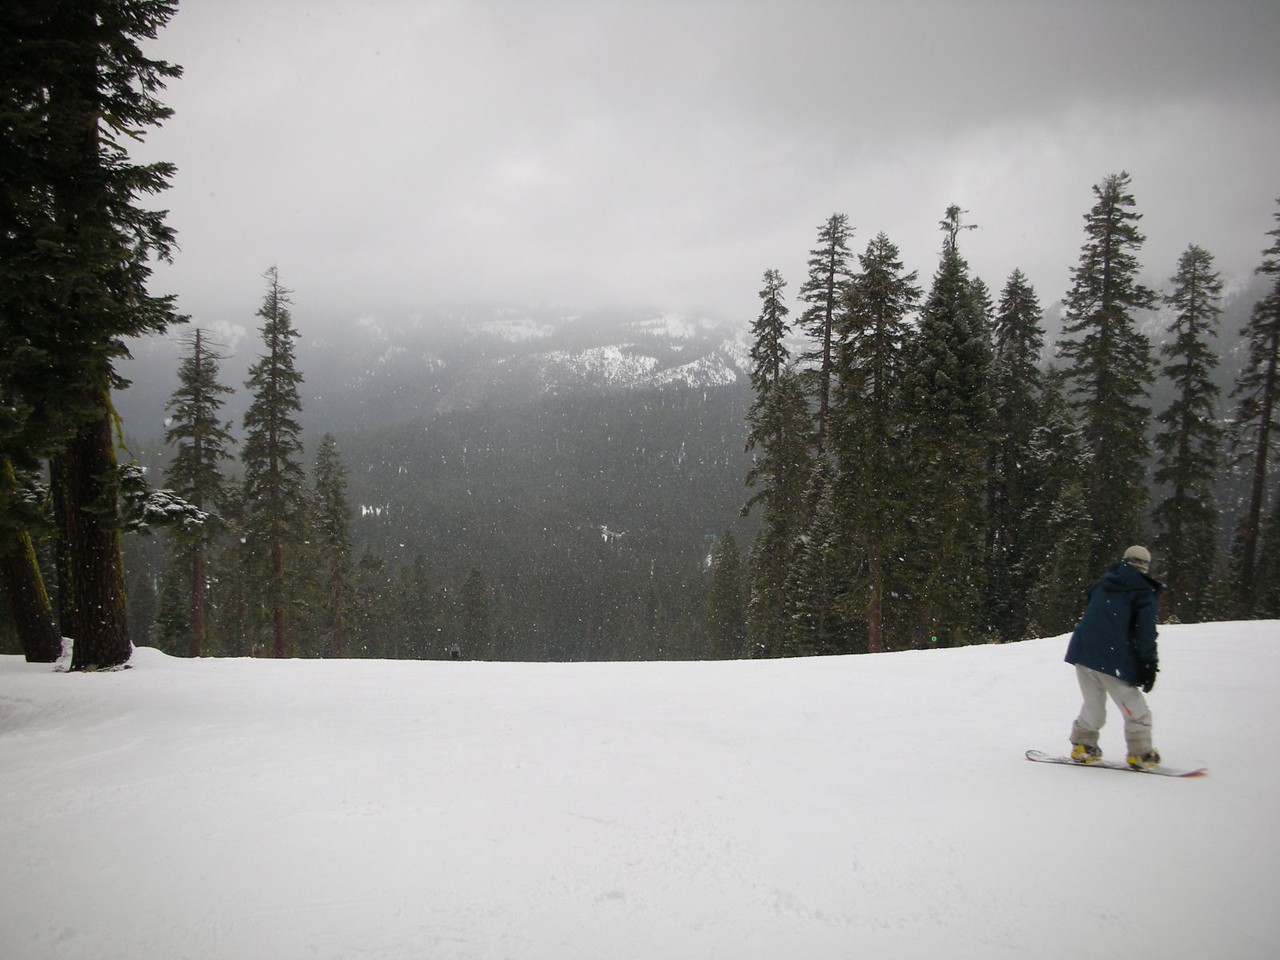 Oh yeah!  I'm on the hill!  It's snowing!  I got new skis on!  Let's rock!